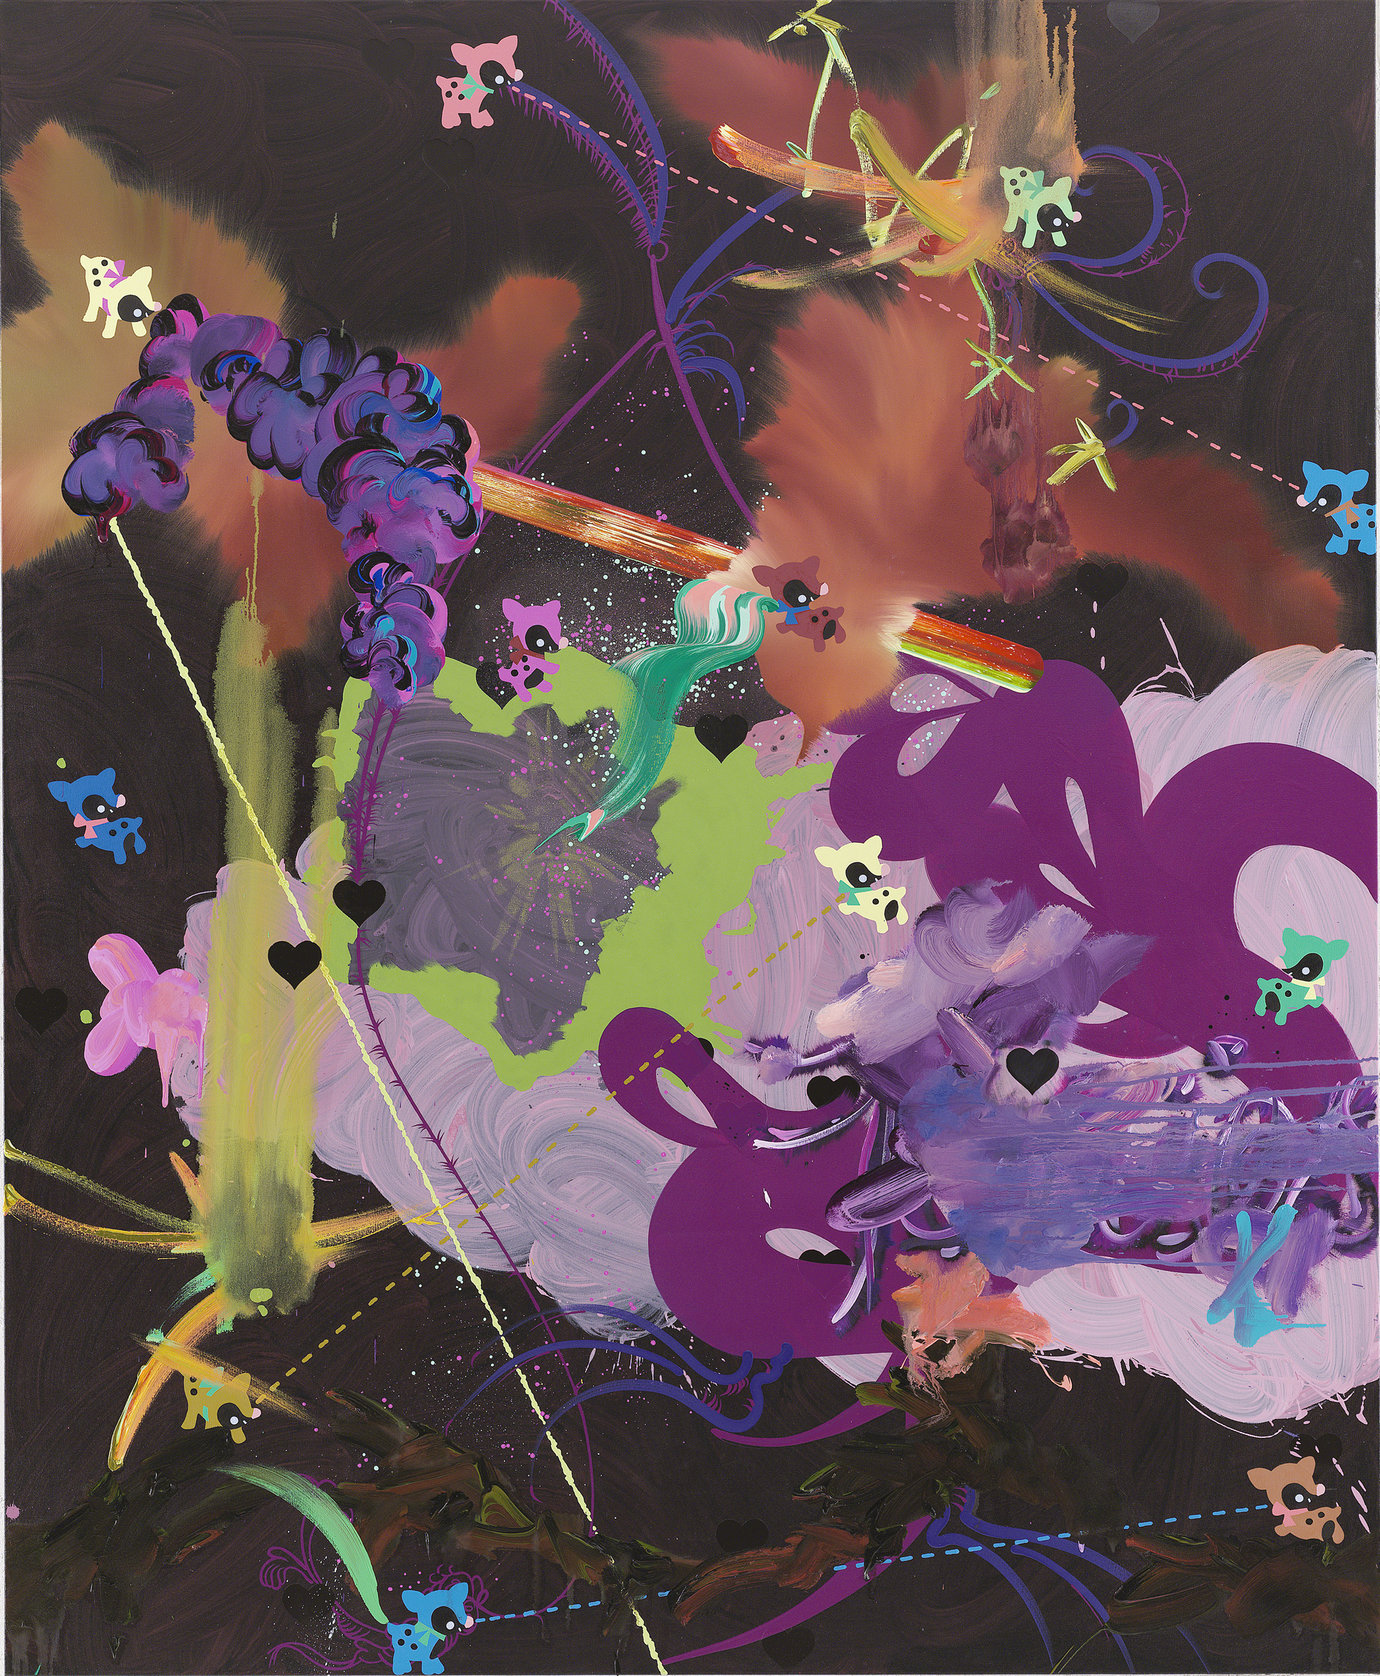 ", 2006. Oil and acrylic on canvas, 84"" x 69"" (213.4 cm x 175.3 cm)."